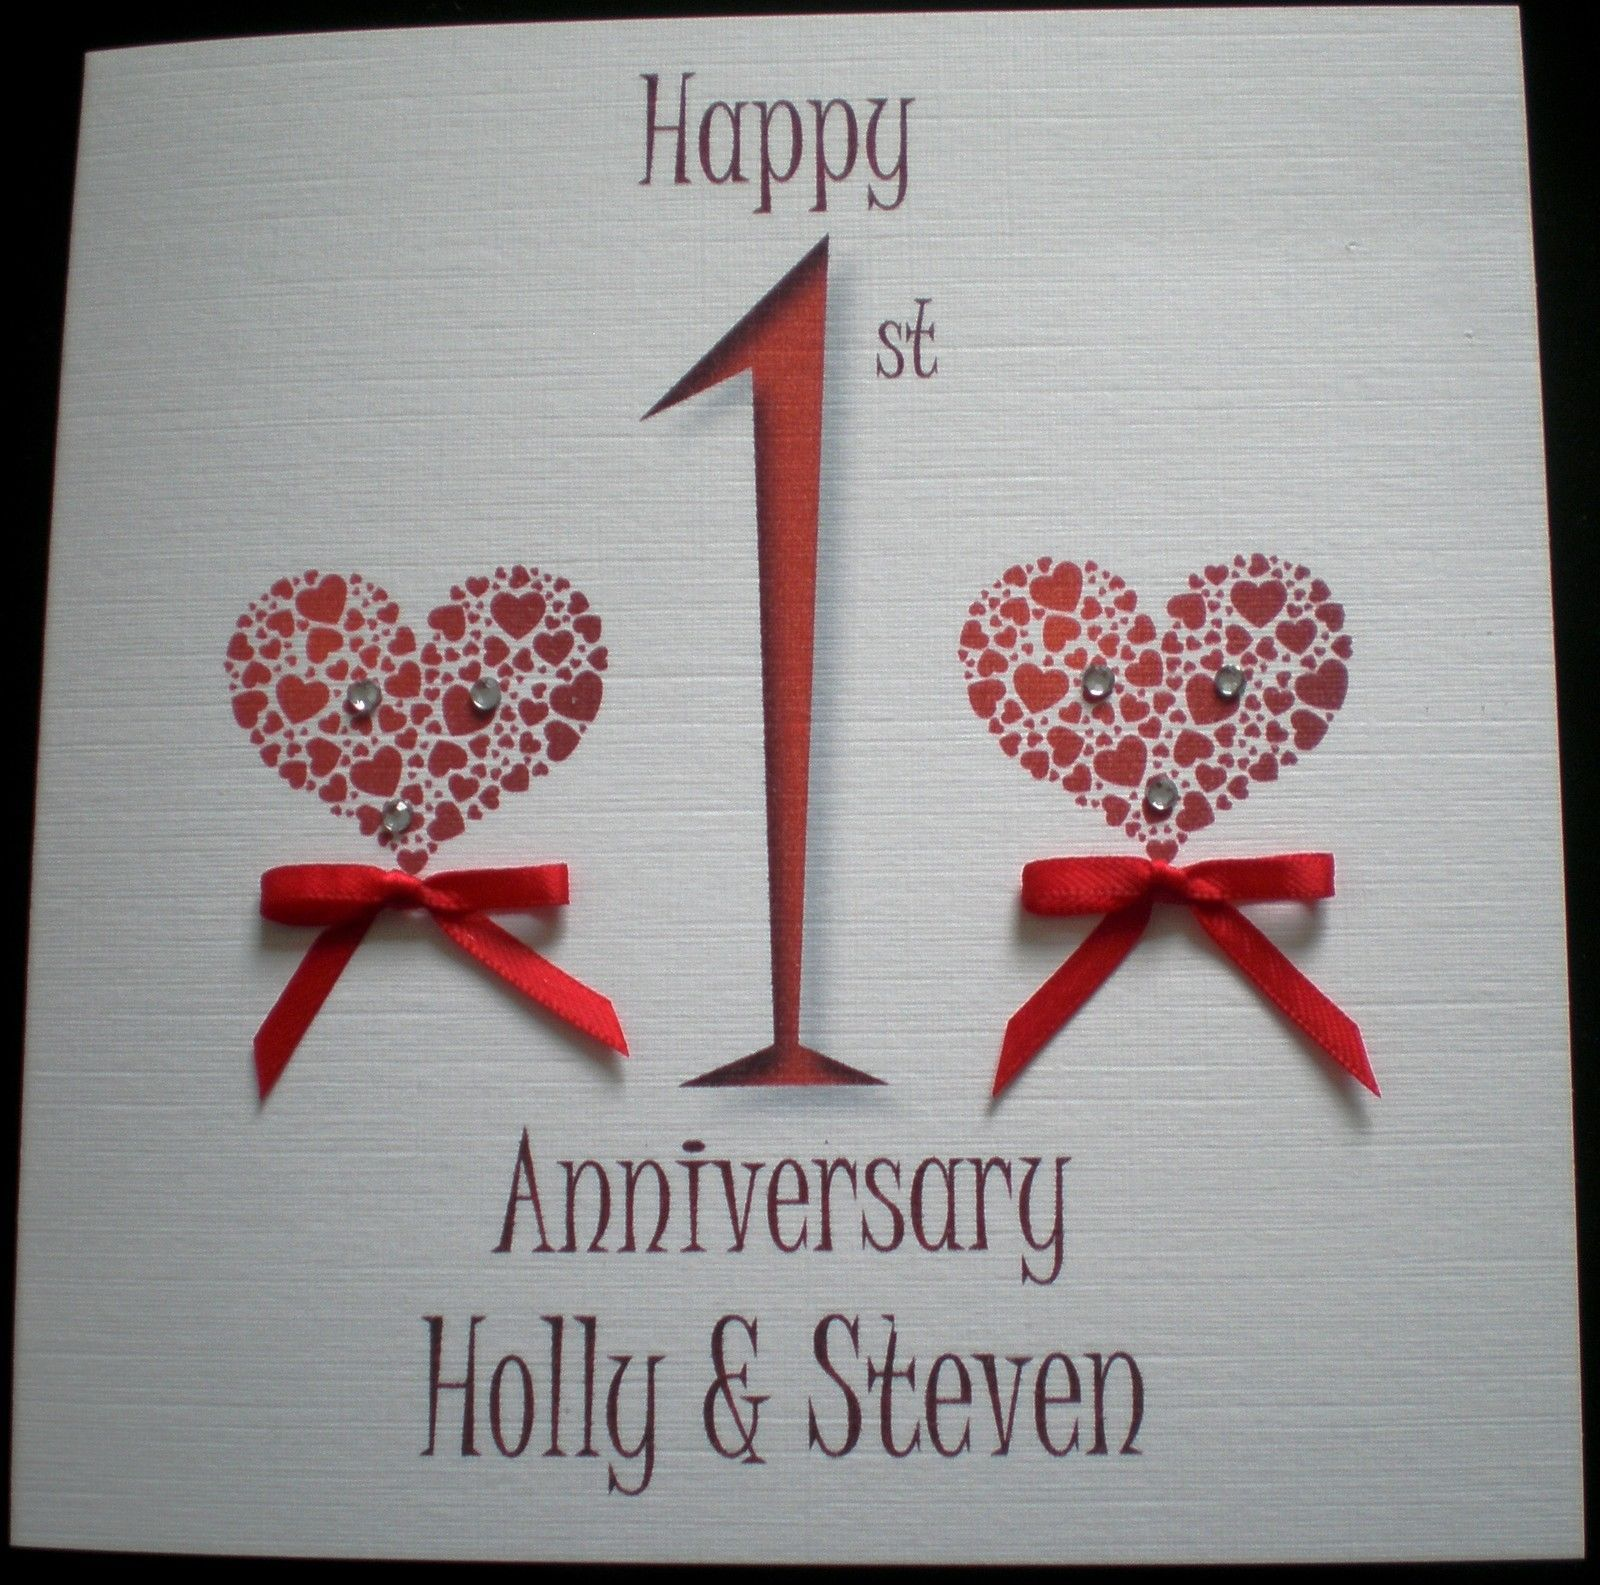 Details about HAPPY WEDDING ANNIVERSARY PERSONALISED CARD